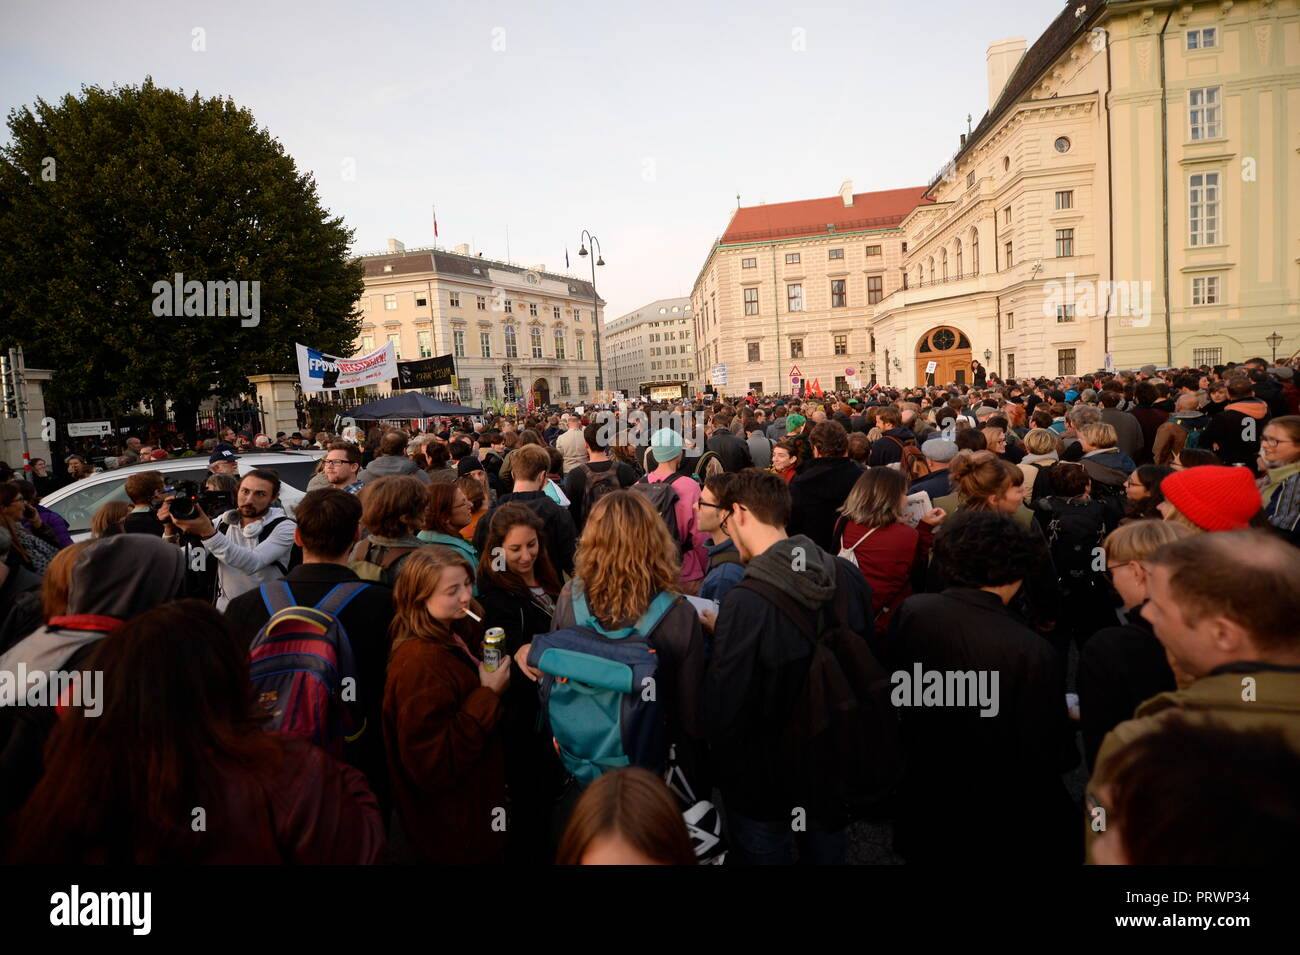 Vienna, Austria. 04. October 2018. The Thursday demonstrations against the current Federal Government are reactivated. Nobel Prize laureate Elfriede Jelinek has already called for the rally on Ballhausplatz in front of the Federal Chancellery. Announced are Stefanie Sargnagel, Sofa Surfers, Gustav, Clara Luzia and actress Erni Mangold. The protests will then be continued every week at various locations in Vienna. Credit: Franz Perc / Alamy Live News Stock Photo